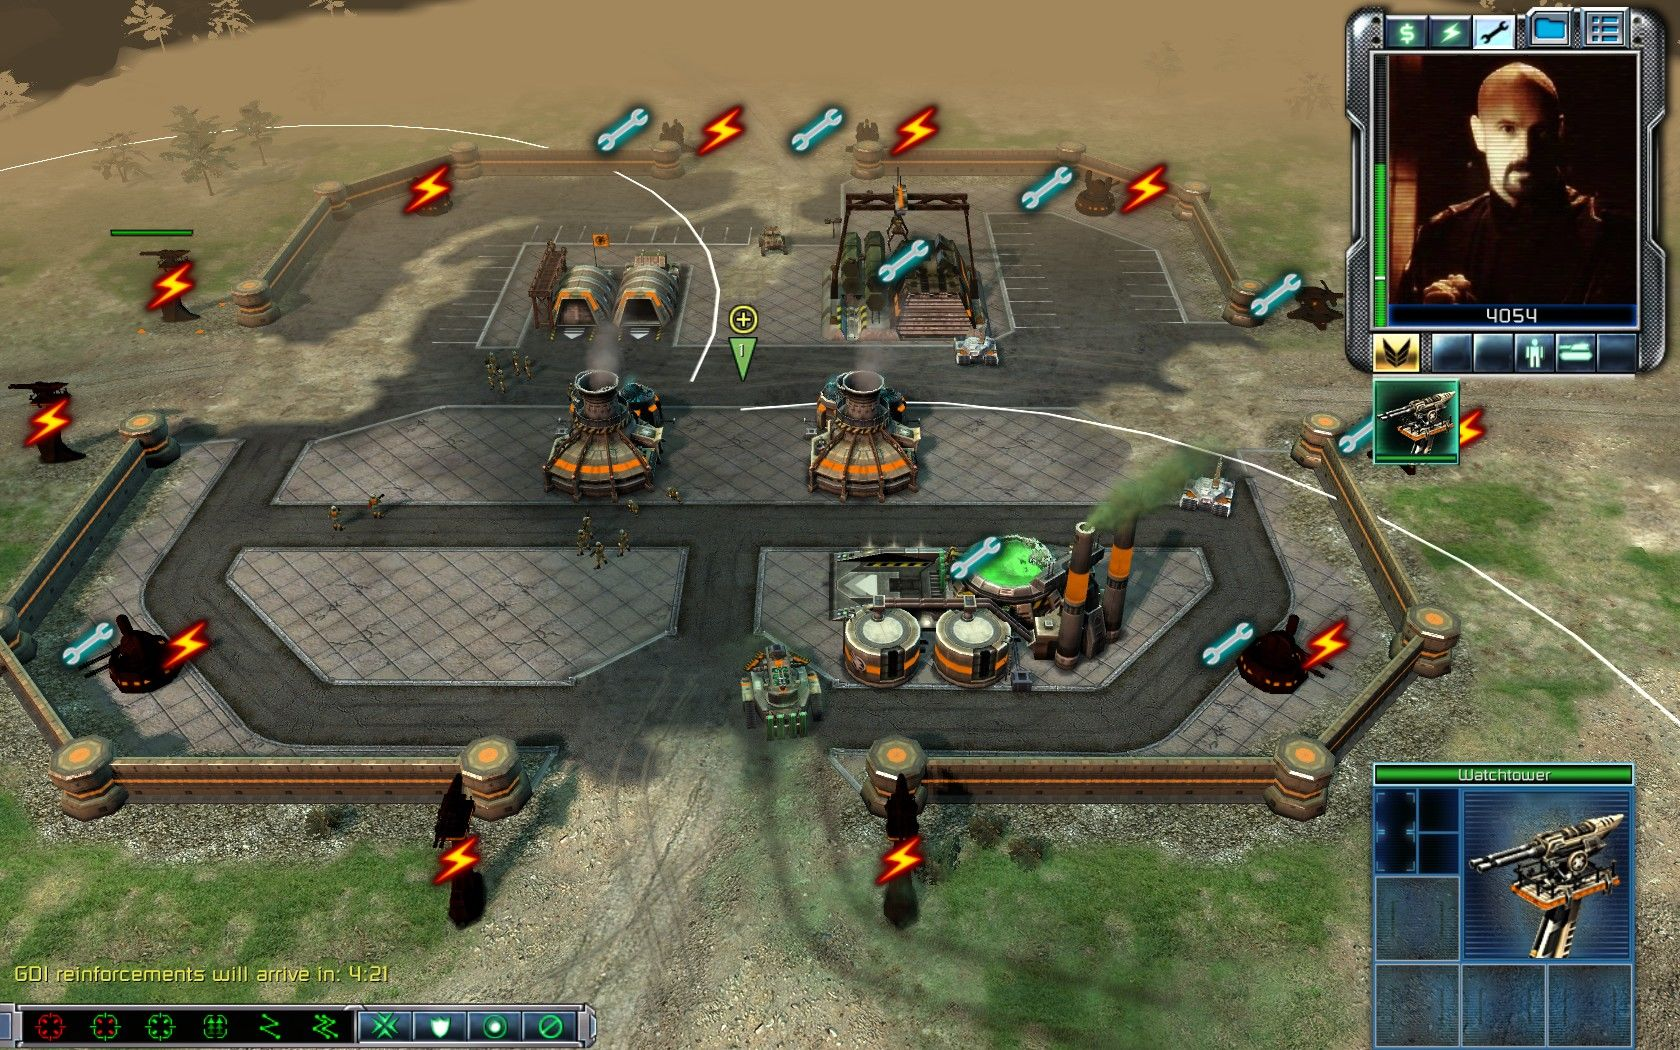 Command & Conquer 3: Tiberium Wars Windows You're on Kane's territory now, and lack of power doesn't encourage the situation.